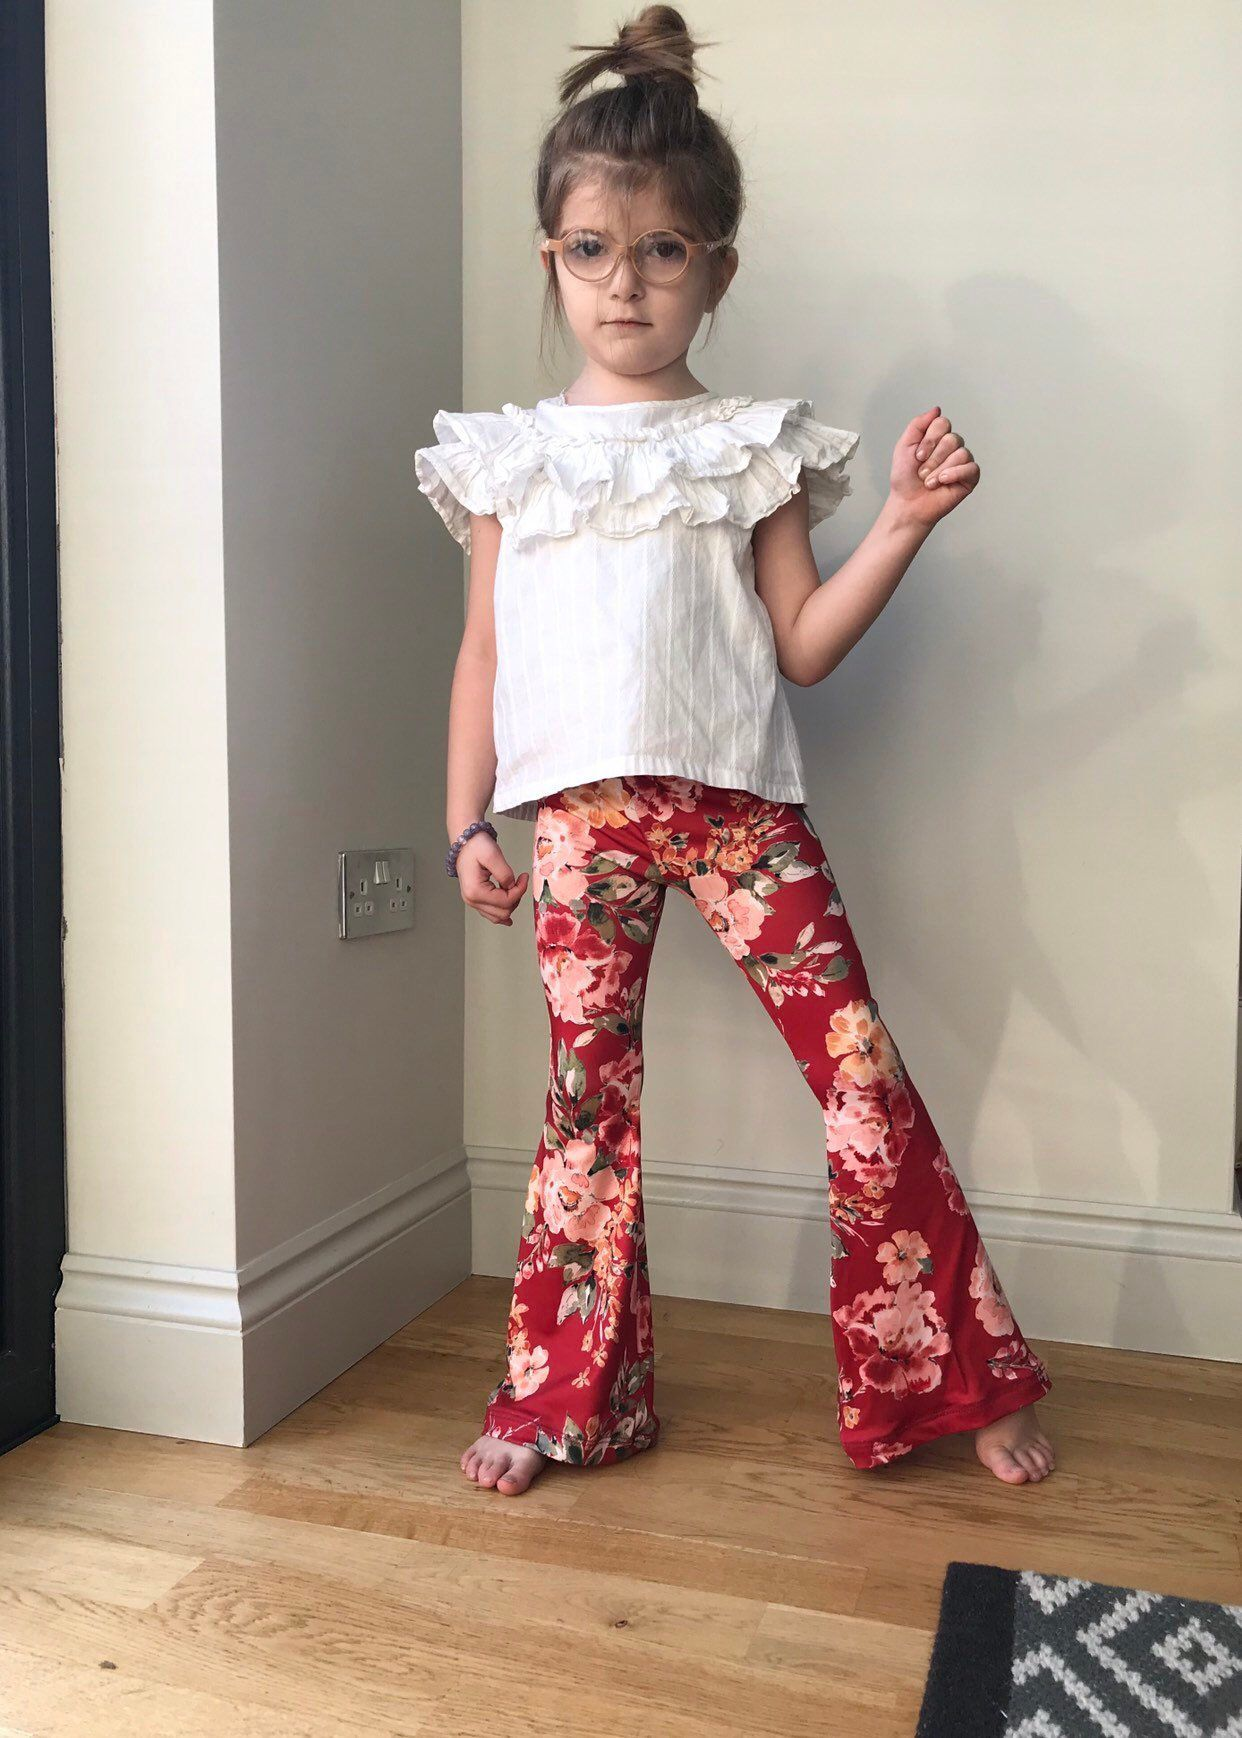 d6dab93f297b5 Excited to share this item from my #etsy shop: Floral Bell bottoms / girls flare  leggings / boho hippie girls red flares / toddler flares / kids flared ...